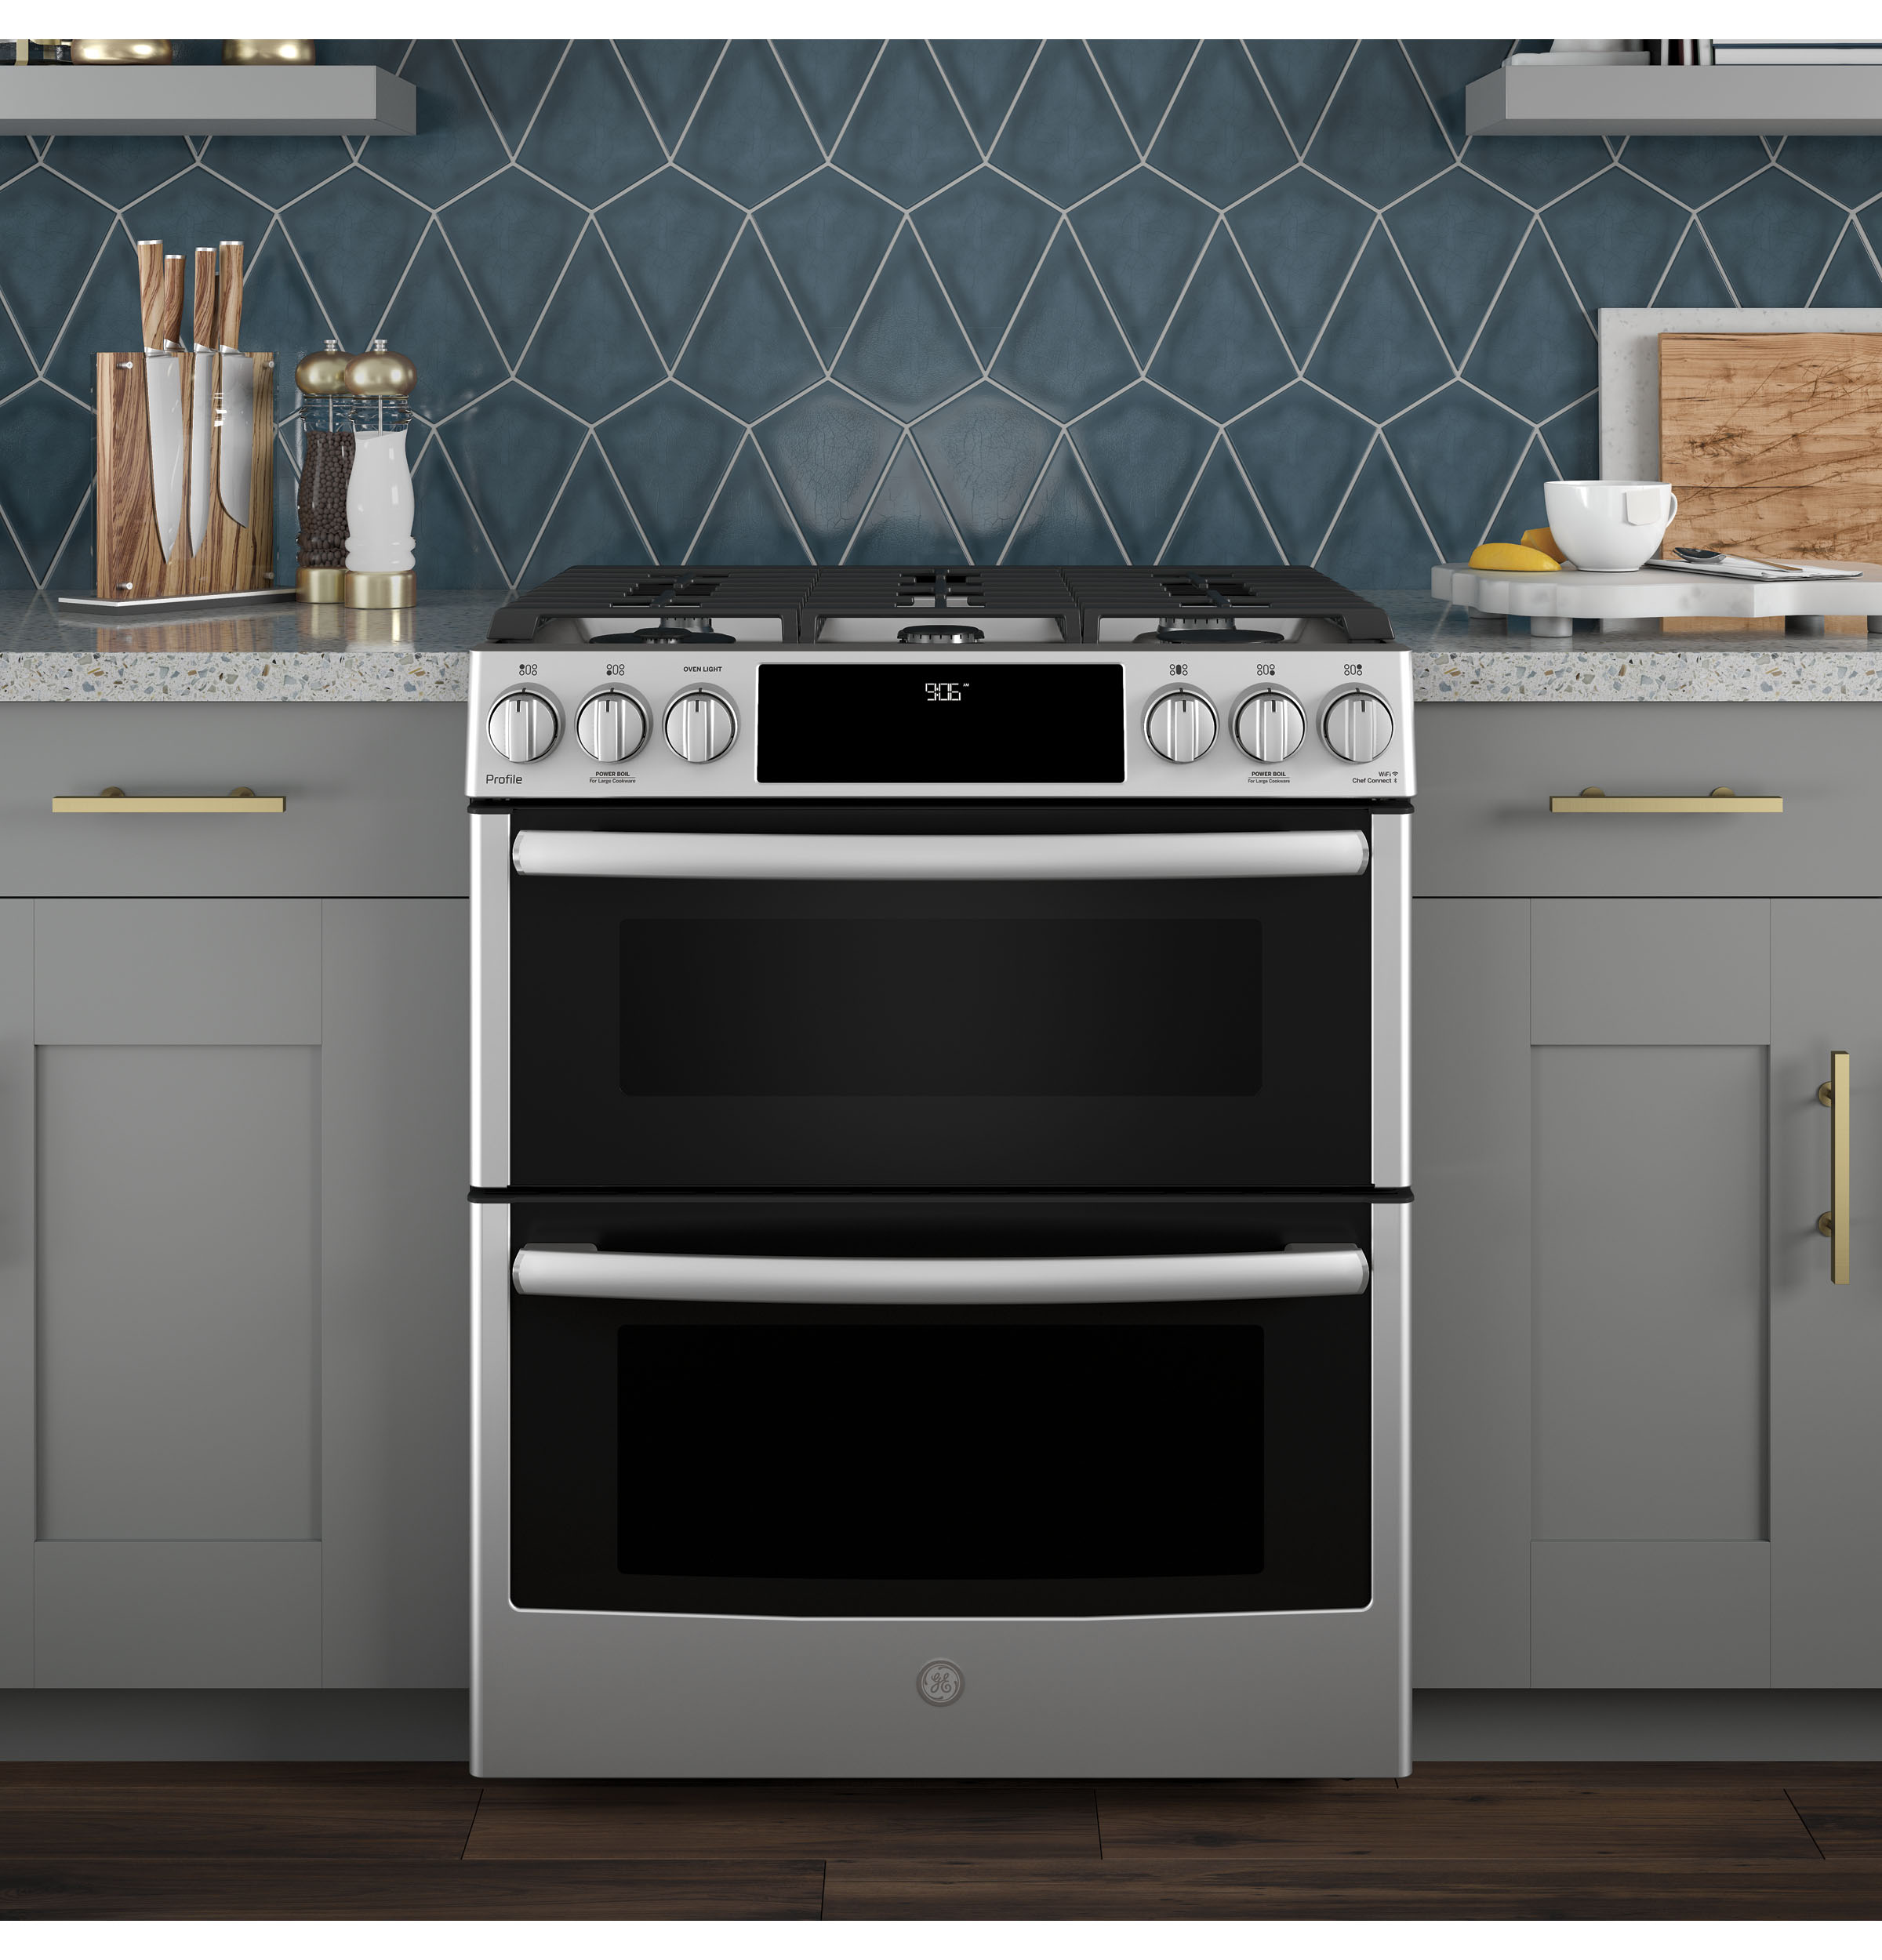 Cleaning Your Oven With Steam Clean From Ge Appliances